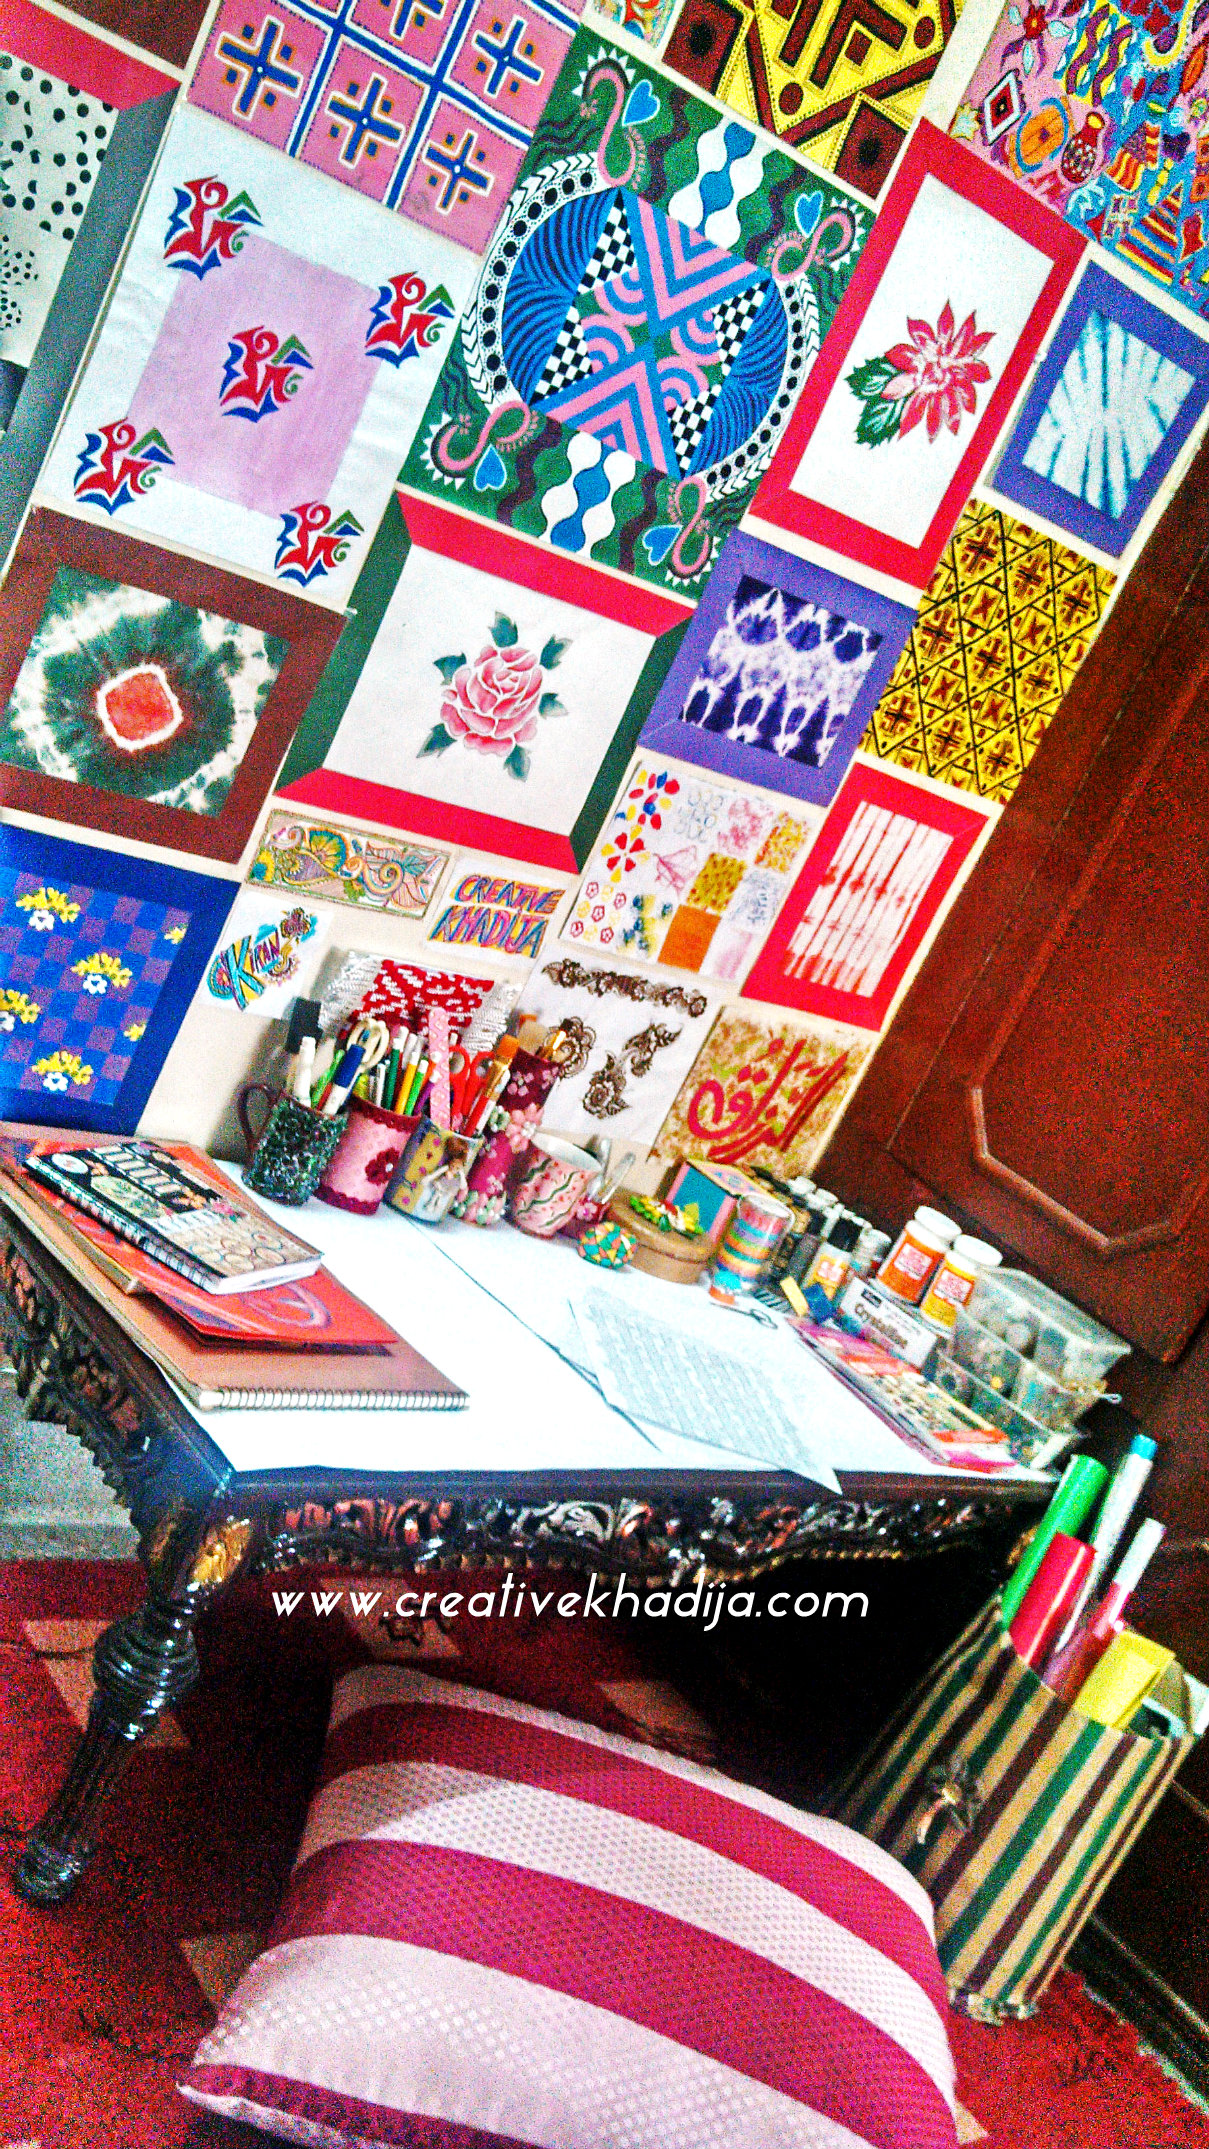 creativekhadija-craftroom-craft-space